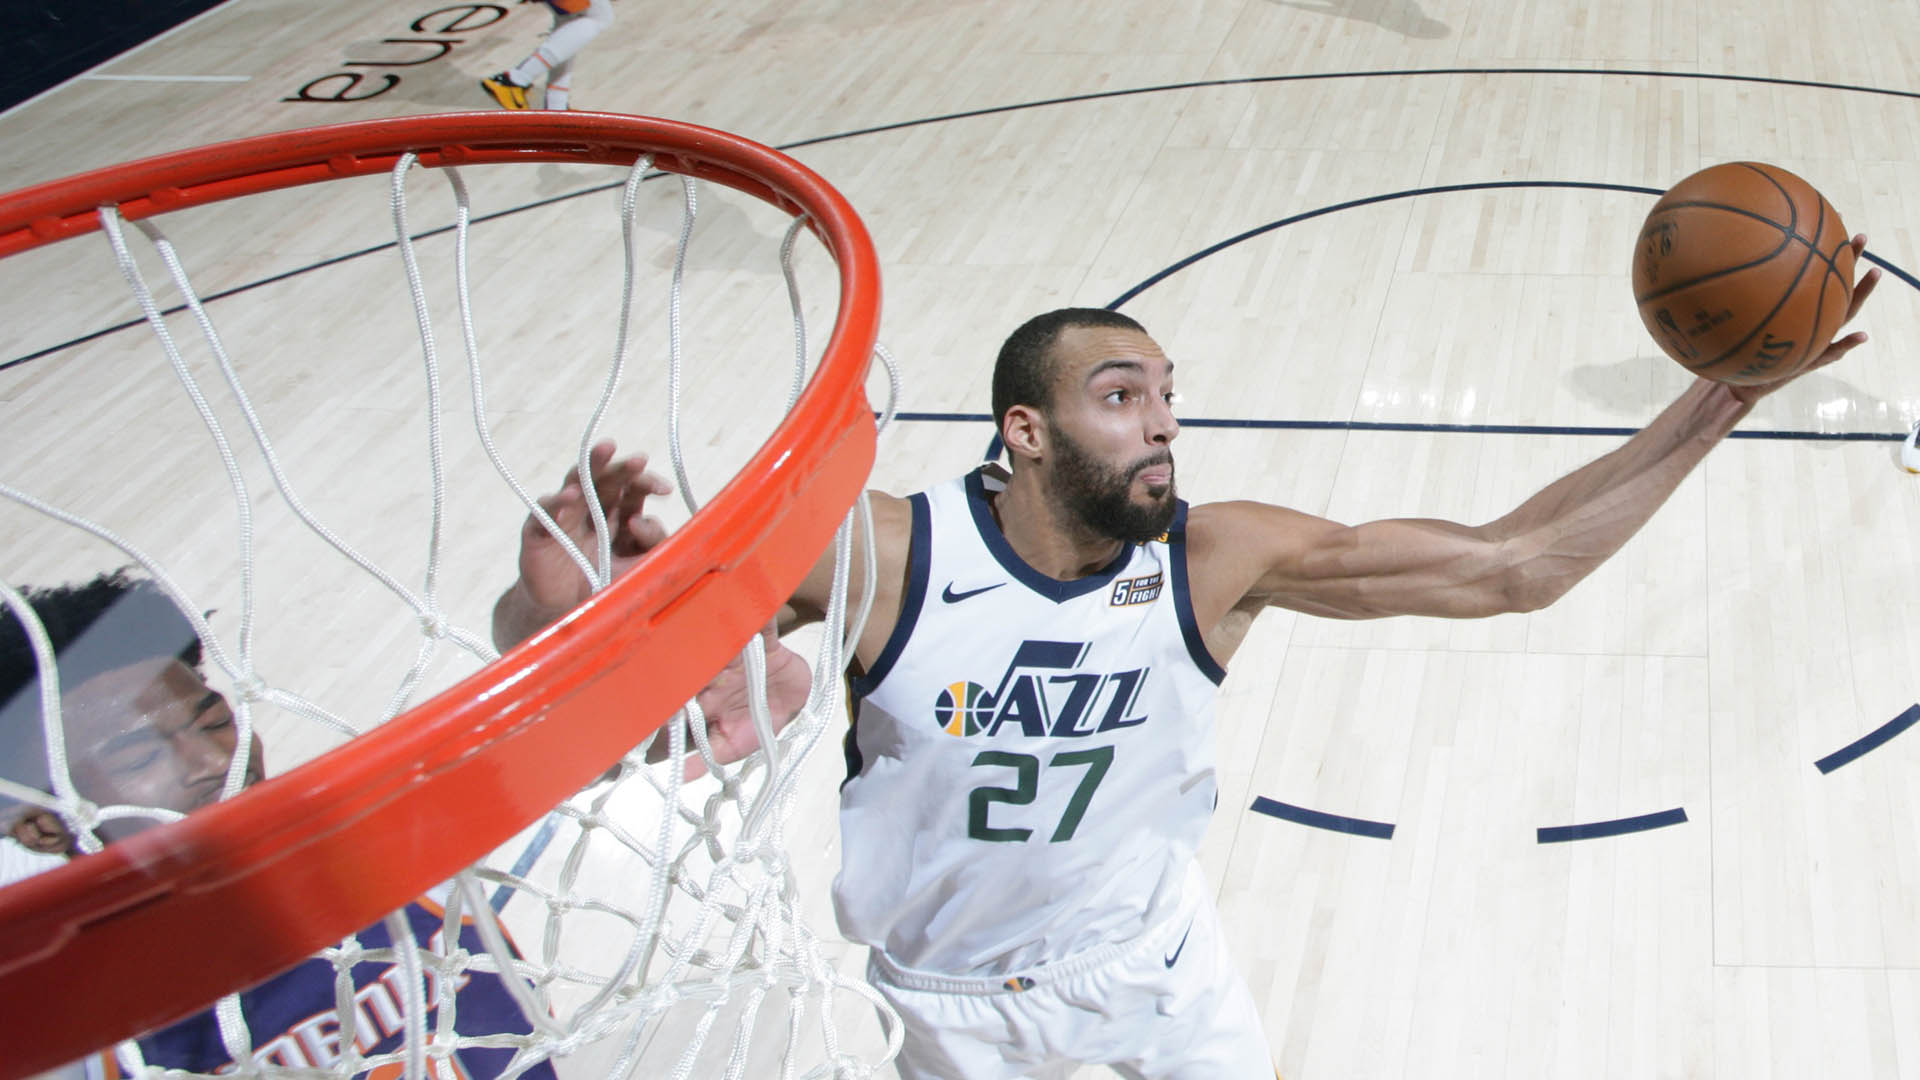 Defensive Player Ladder: Is it Gobert or Simmons?